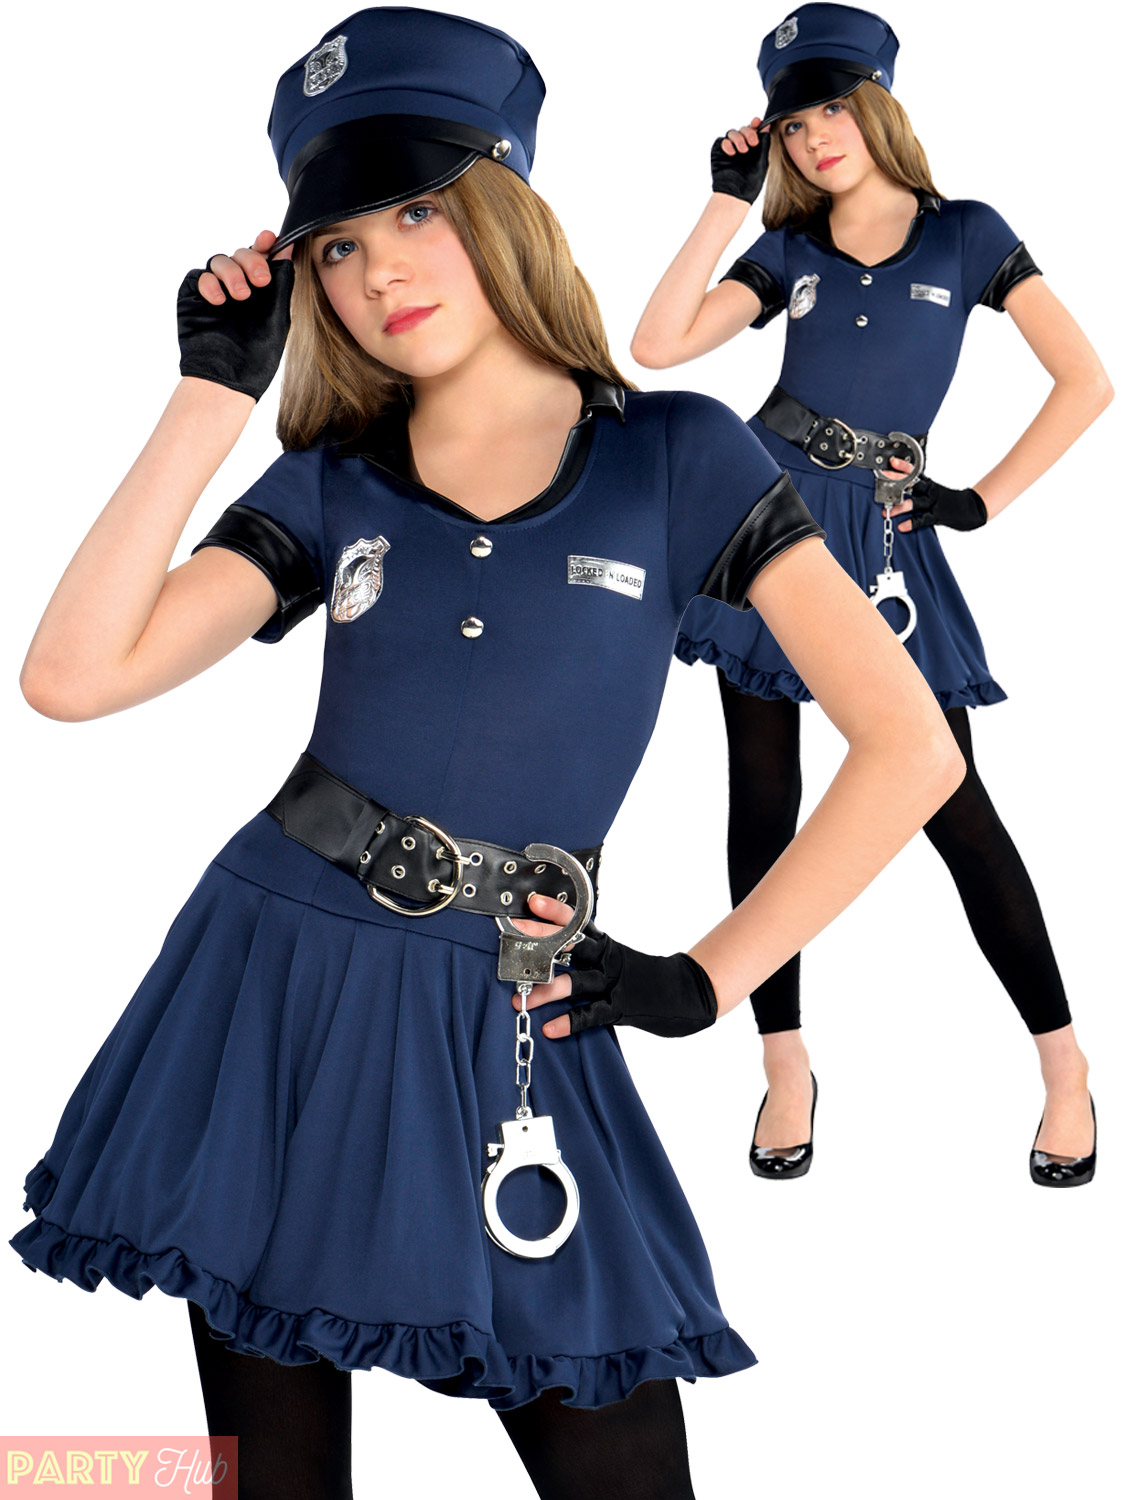 c057ec99a7b Amscan International Teens Cop Police Cutie Costume - Girls Fancy Dress  Officer